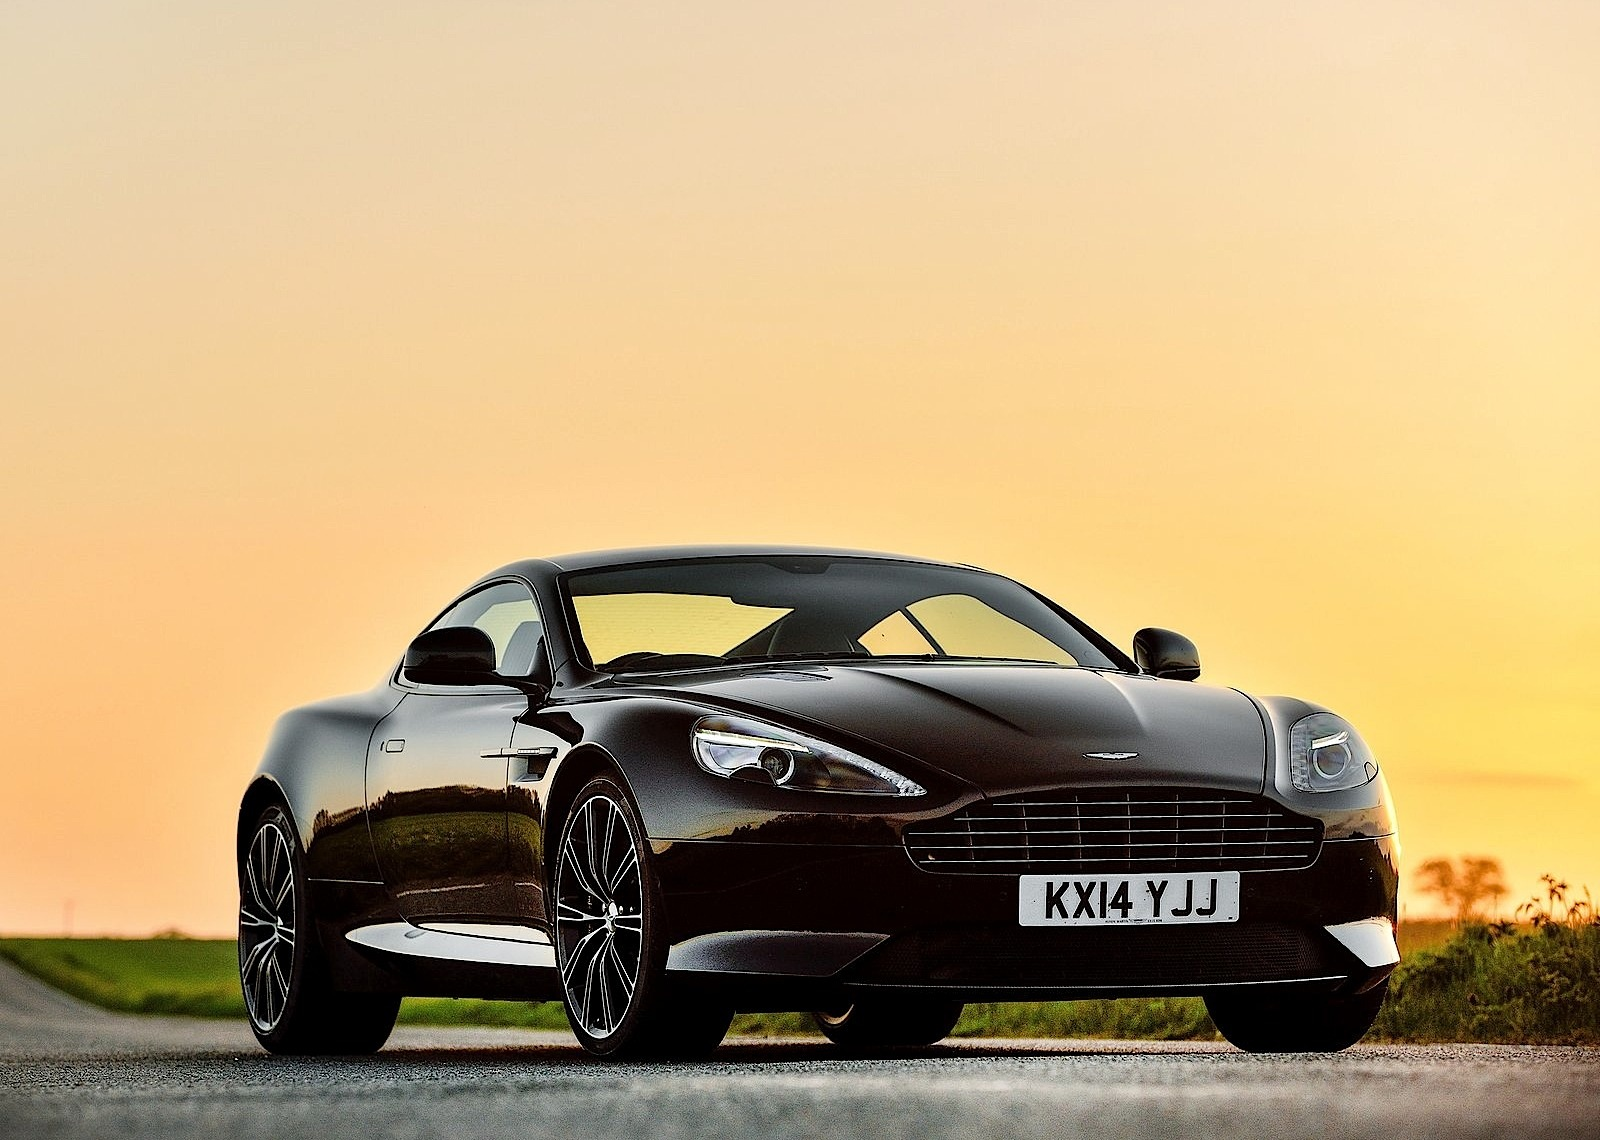 aston martin db9 carbon edition specs & photos - 2014, 2015, 2016